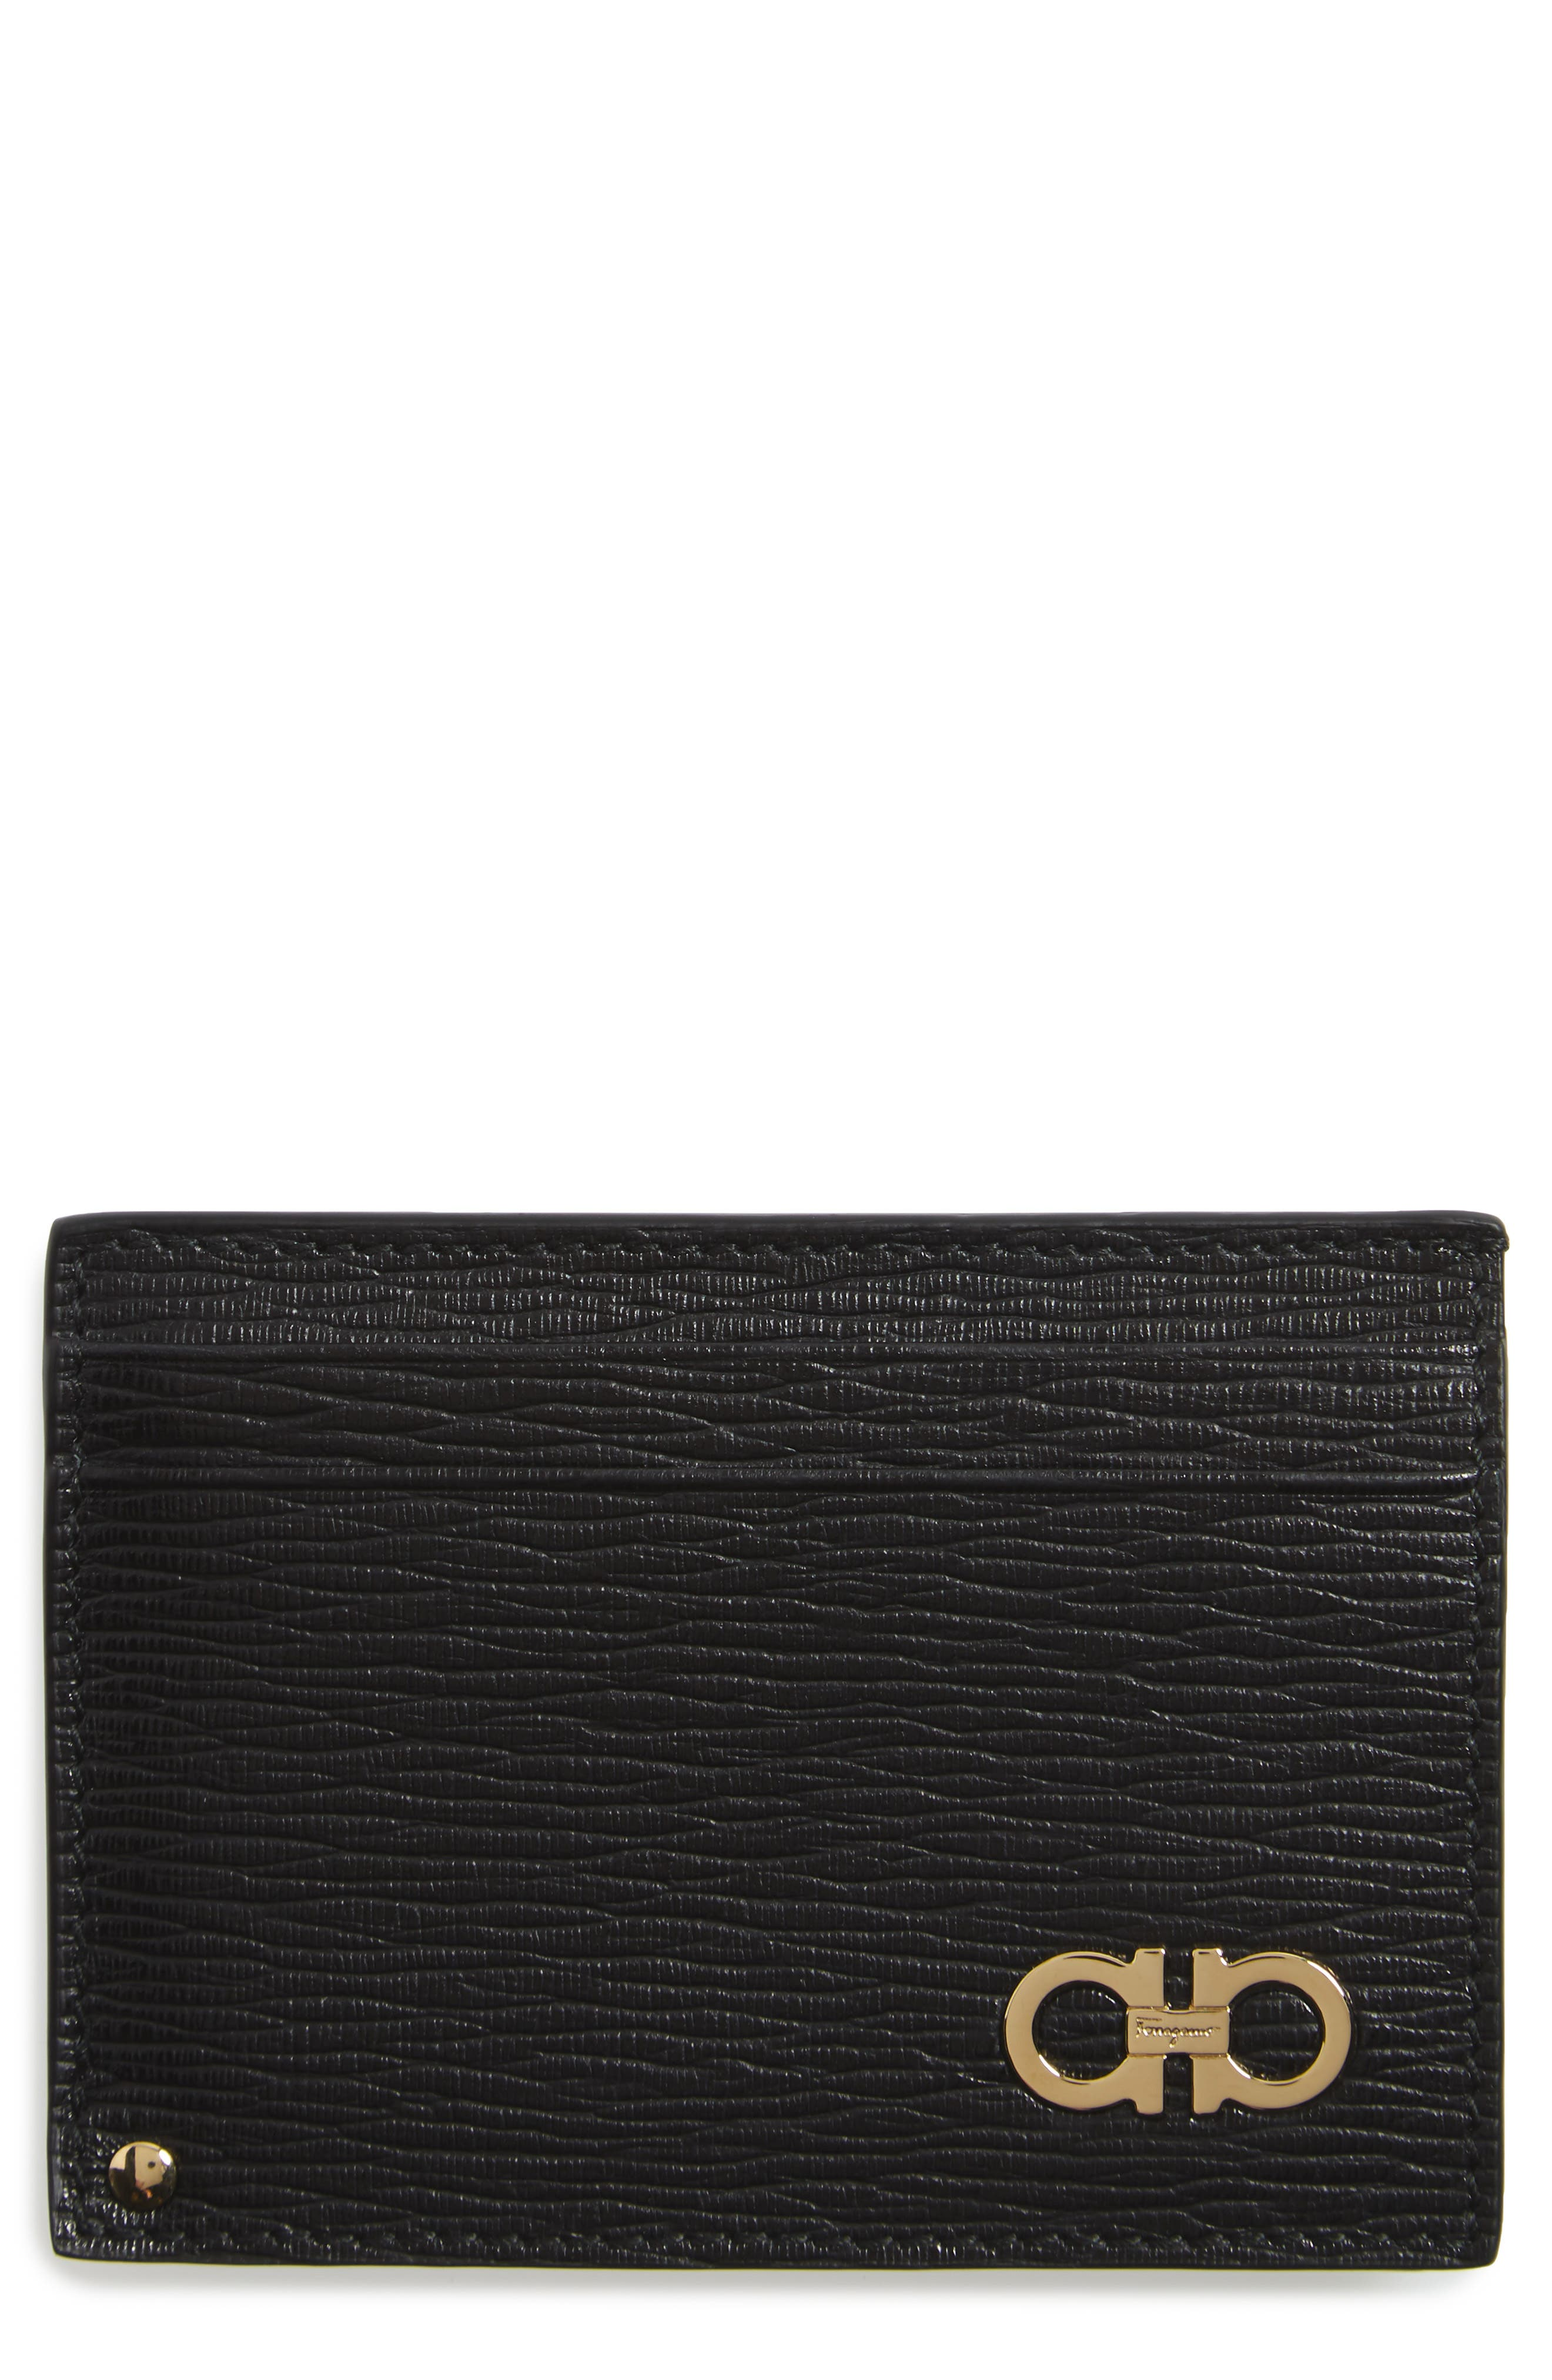 Revival Leather Wallet,                         Main,                         color, BLACK